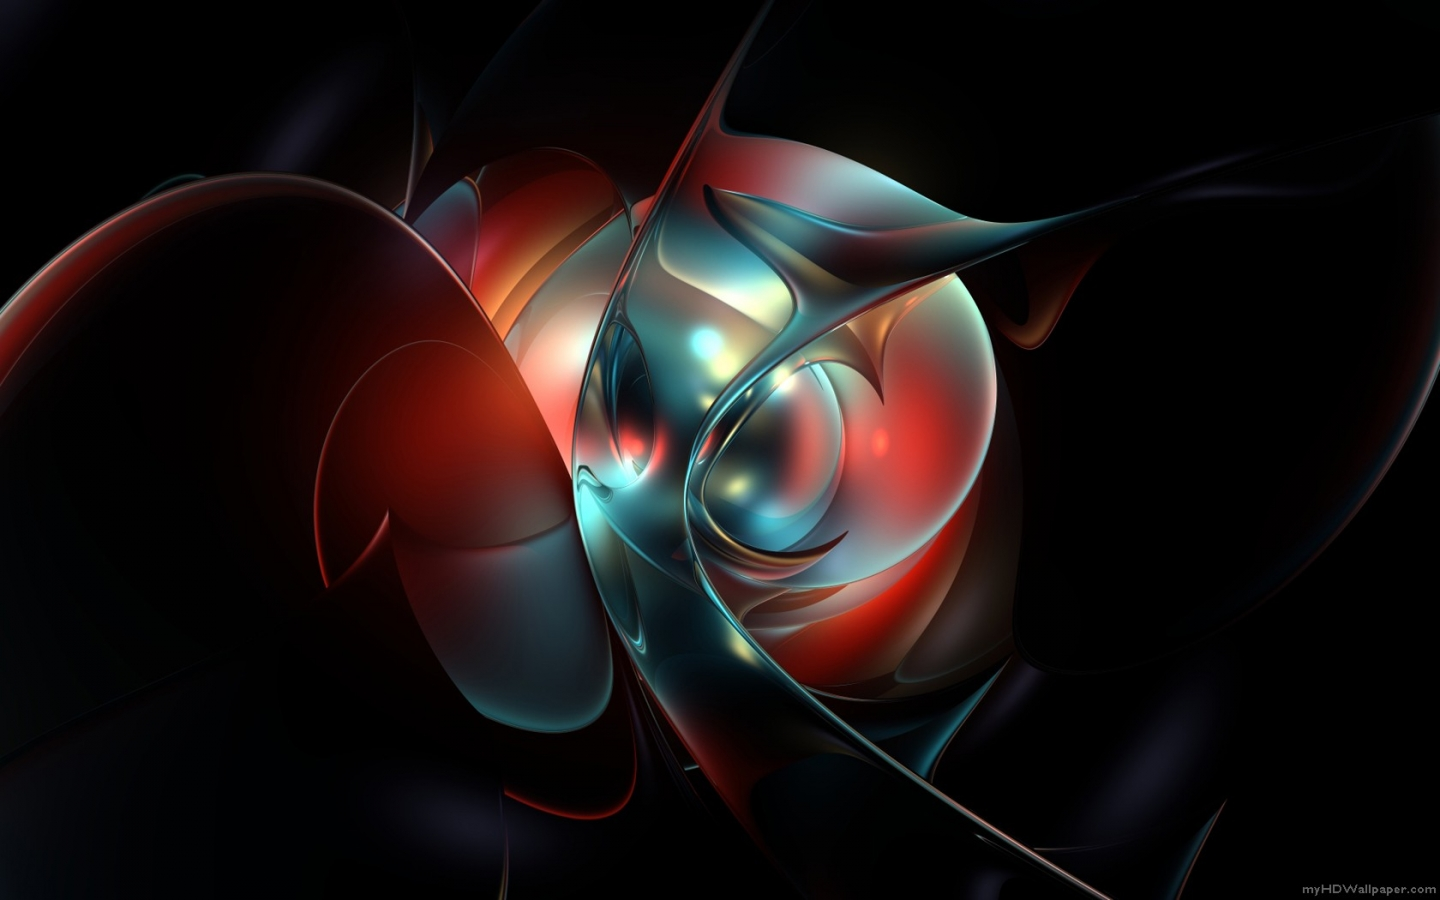 http://2.bp.blogspot.com/-mrwxU3LKUsY/UEjSA_-4fAI/AAAAAAAACUI/SDipYVc814M/s1600/Abstract+Wallpapers+4.jpg